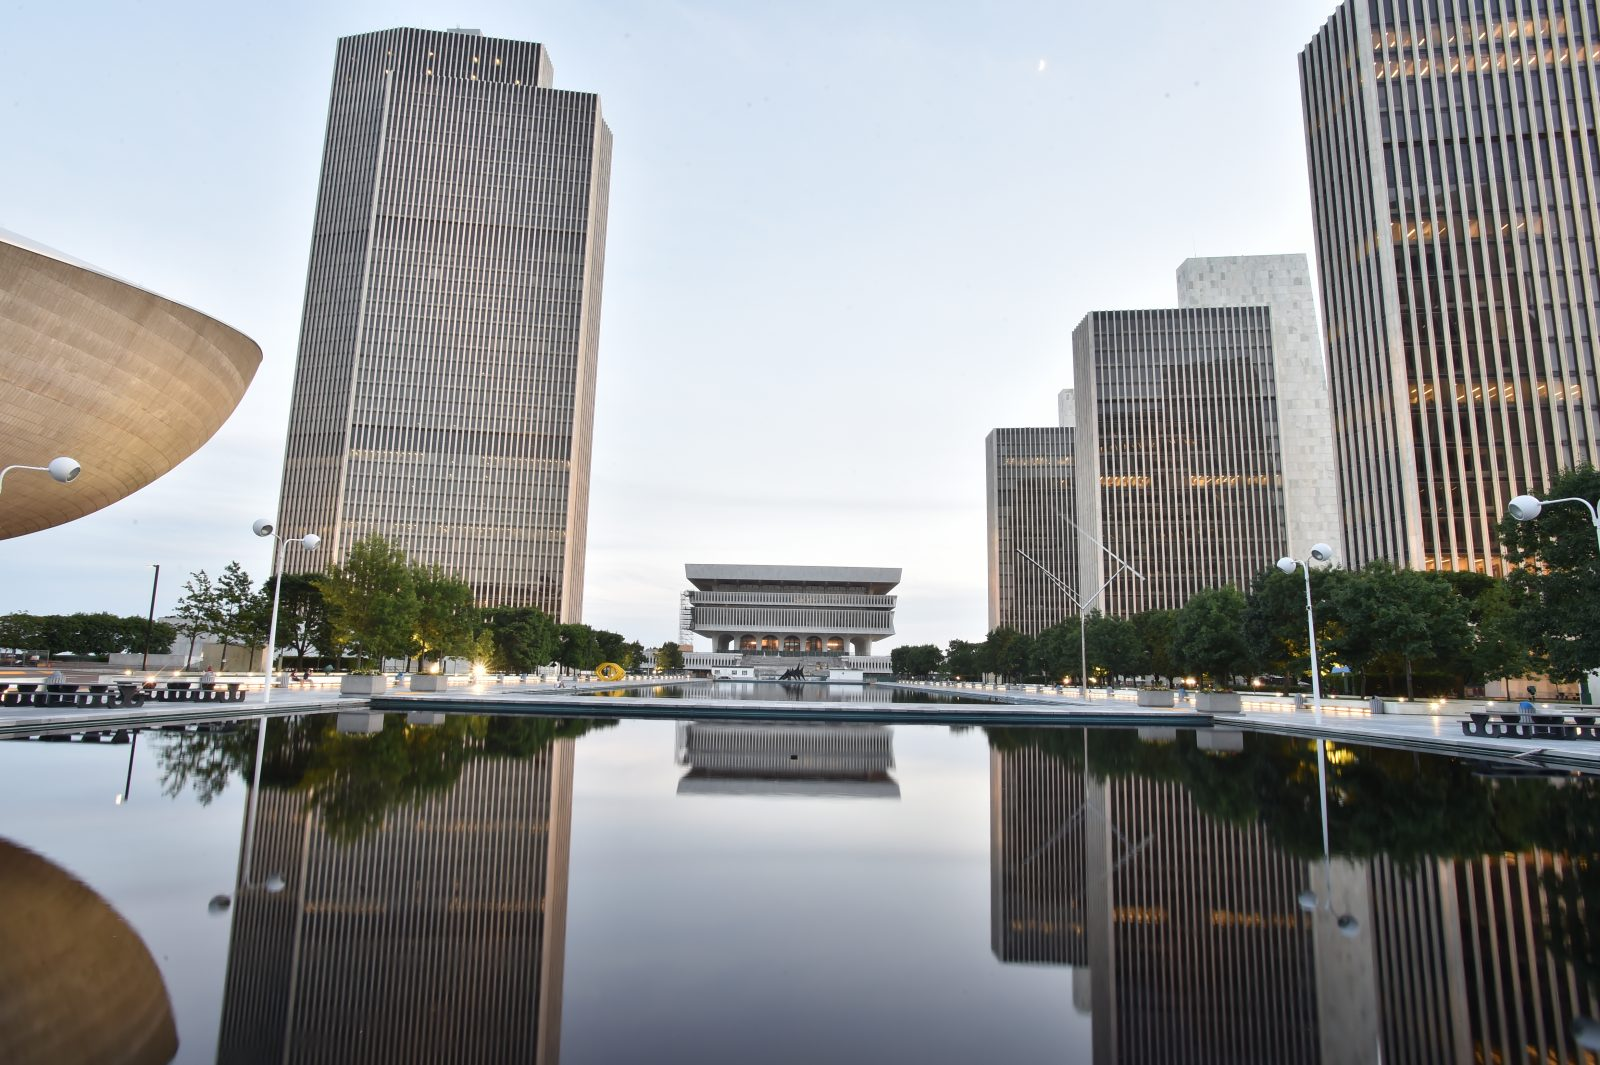 The Empire State Plaza at sunset on the first full day of summer June 22, 2015. (Office of the Governor - Kevin P. Coughlin)